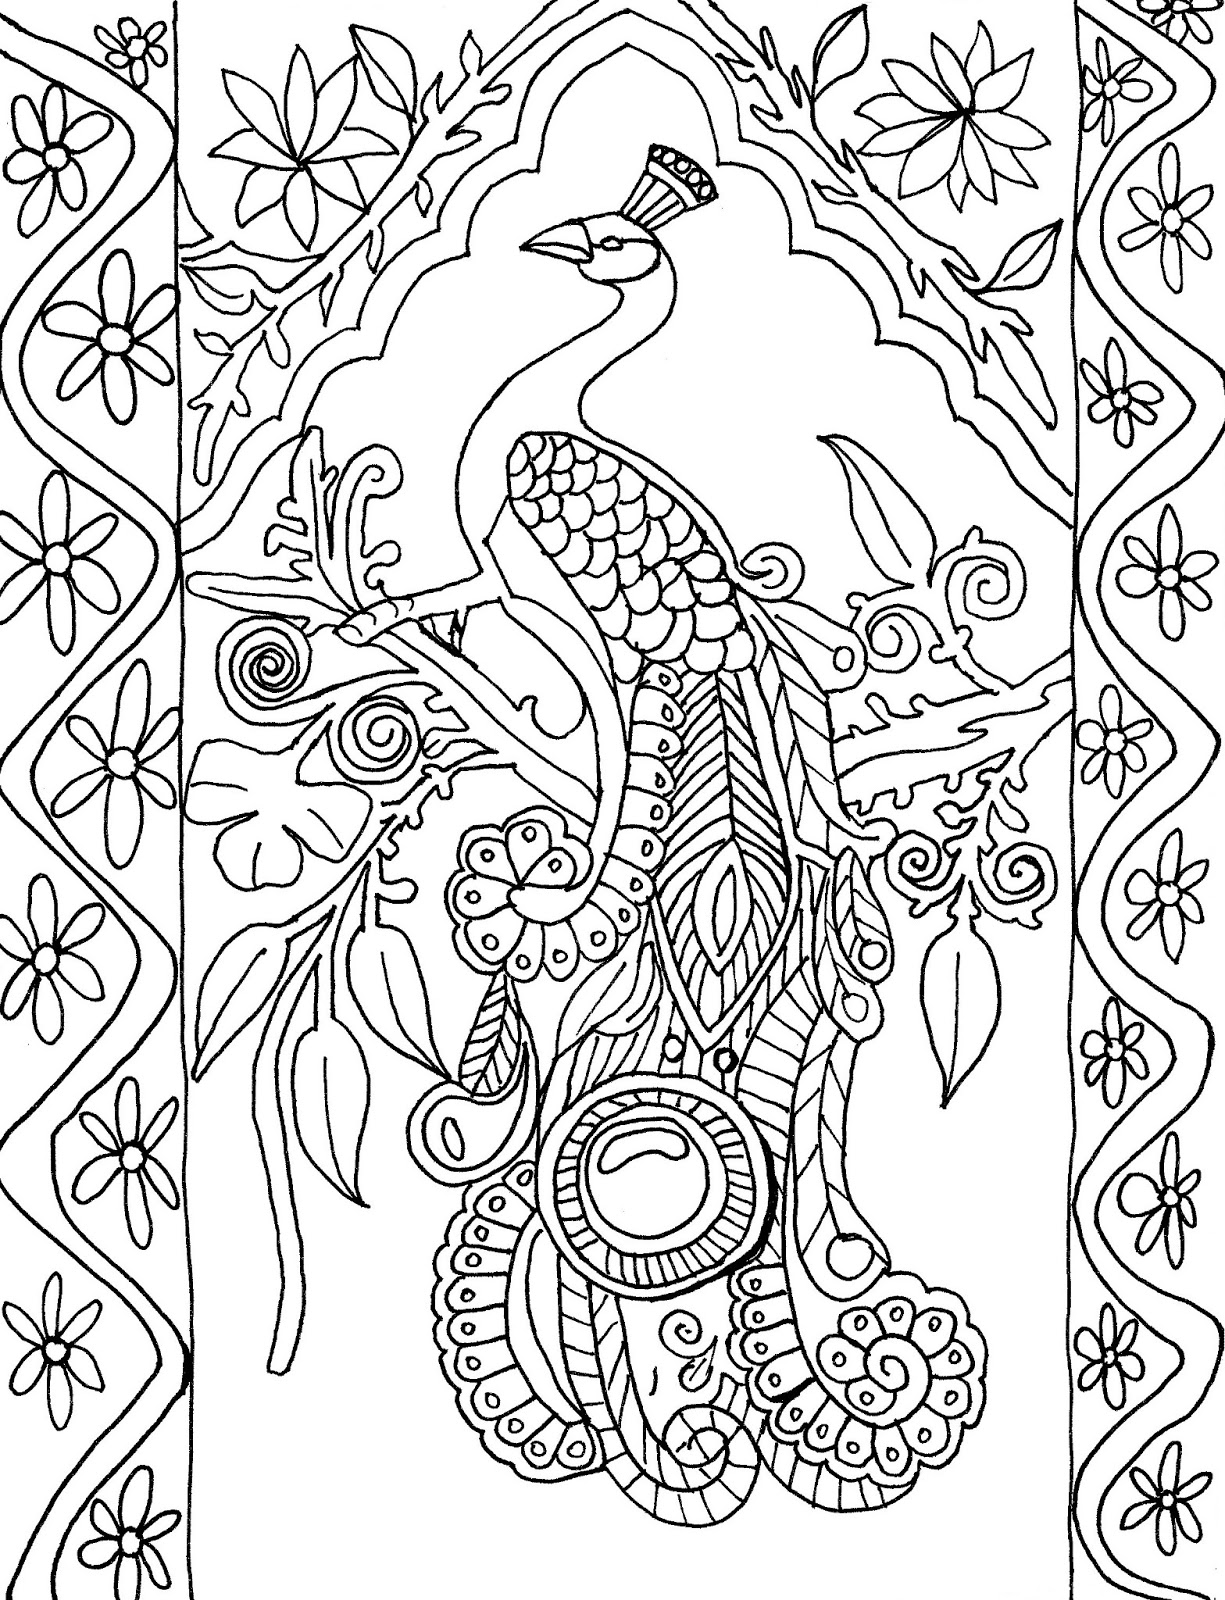 peacock coloring pages for adults squared coloring page of a peacock peacocks adult adults coloring for peacock pages